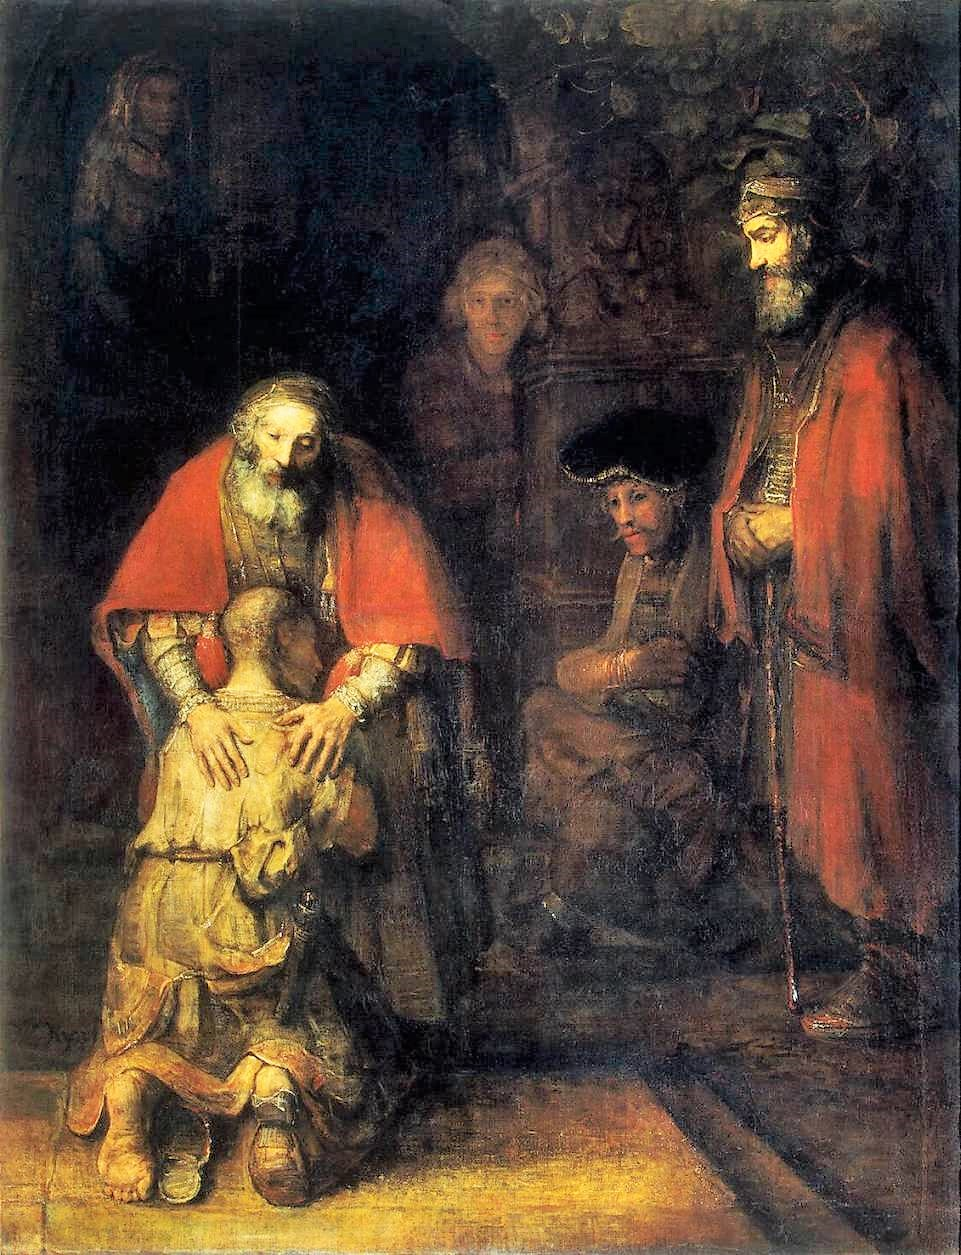 Rembrandt 1668 ca The_Return_of_the_Prodigal_Son Ermitage